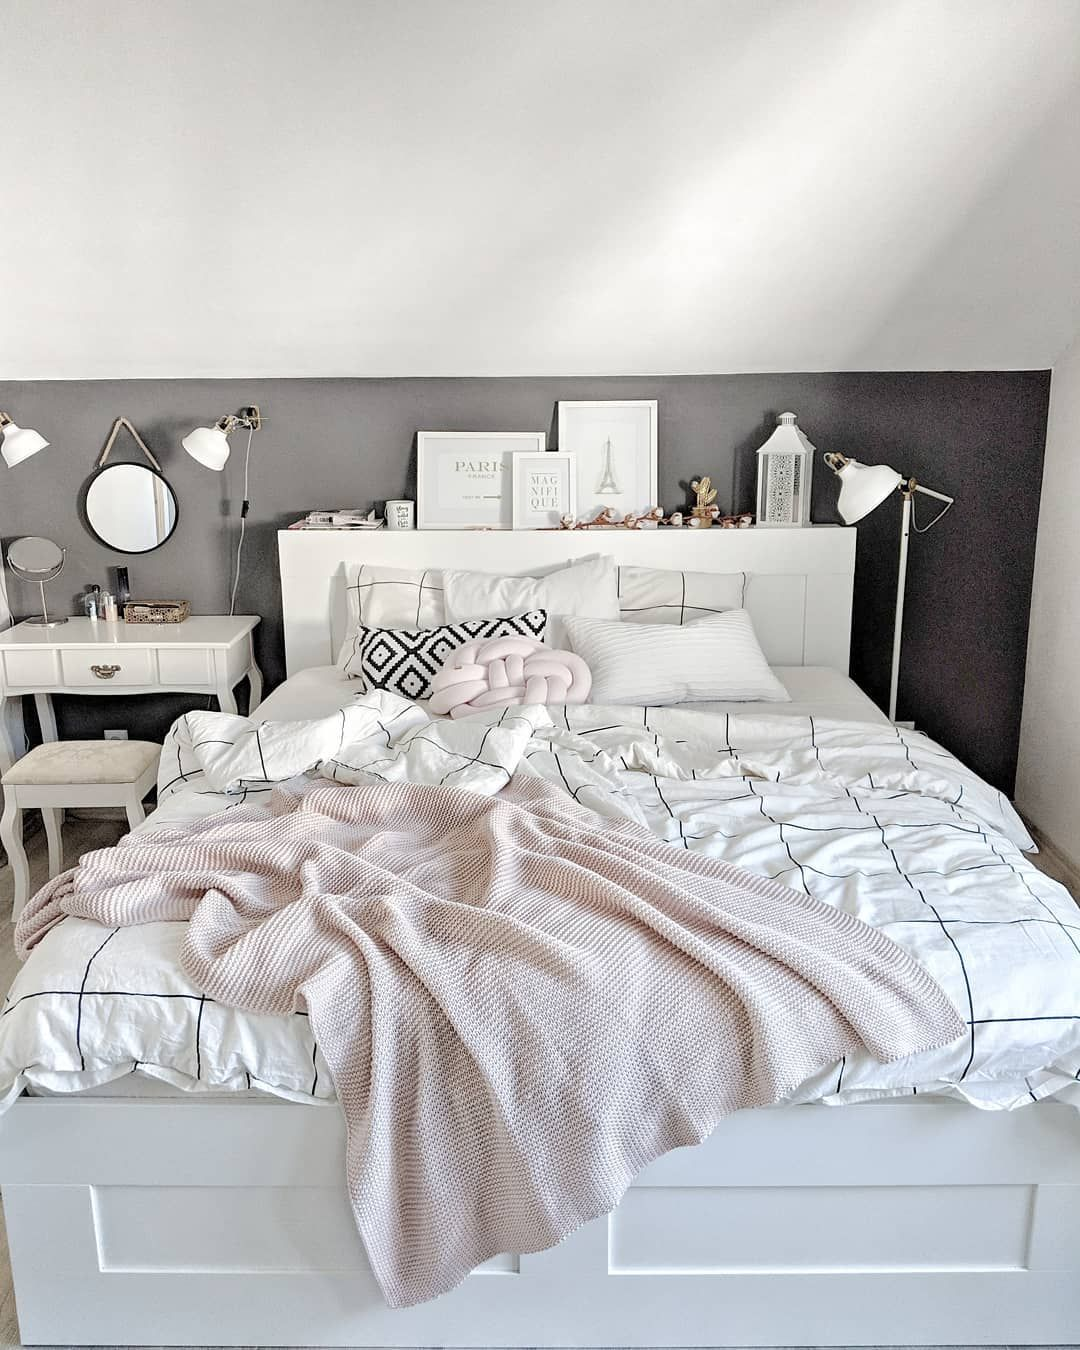 Sypialnia Szara Sciana Lozko Ikea Brimnes Bed Brimnes Ikea White Bedding Grey Wall Bedroom Goals Bedroom Ideas Brimnes Bed Ikea Bed Gray Bedroom Walls